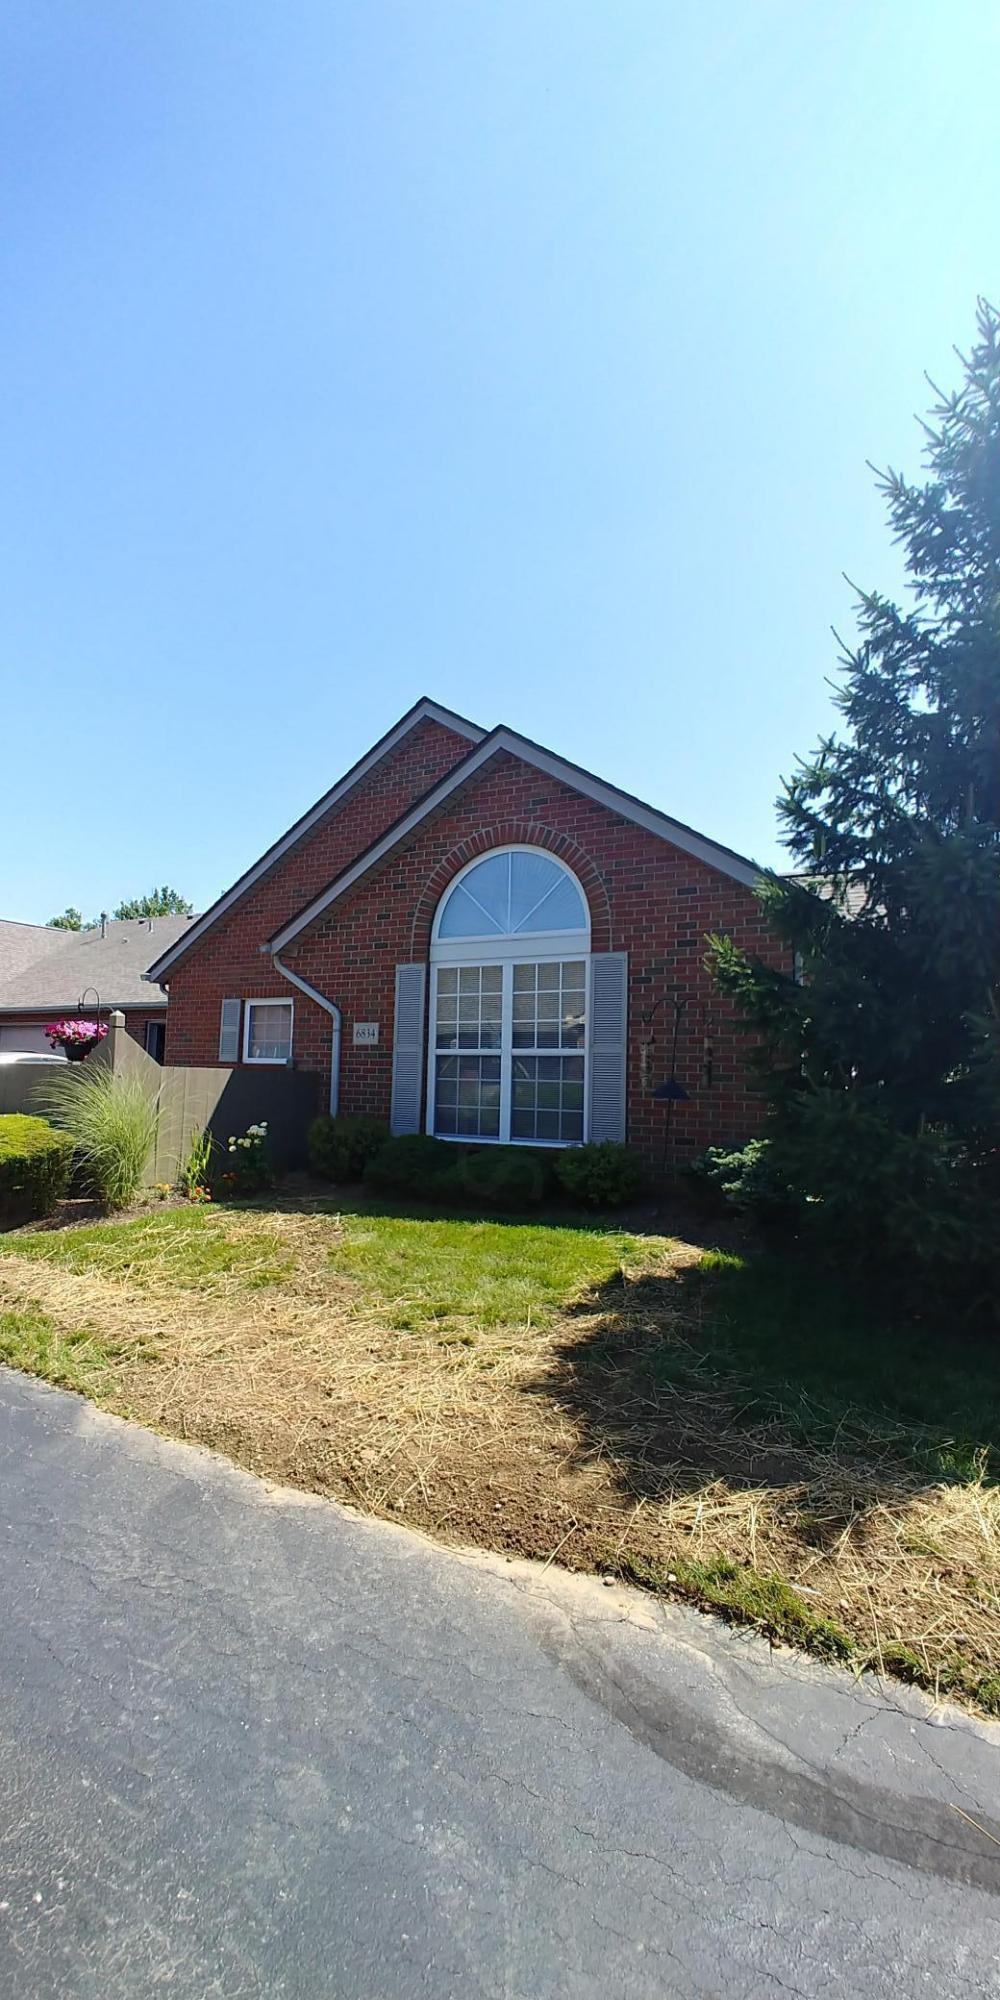 Photo of 6834 Newrock Drive, New Albany, OH 43054